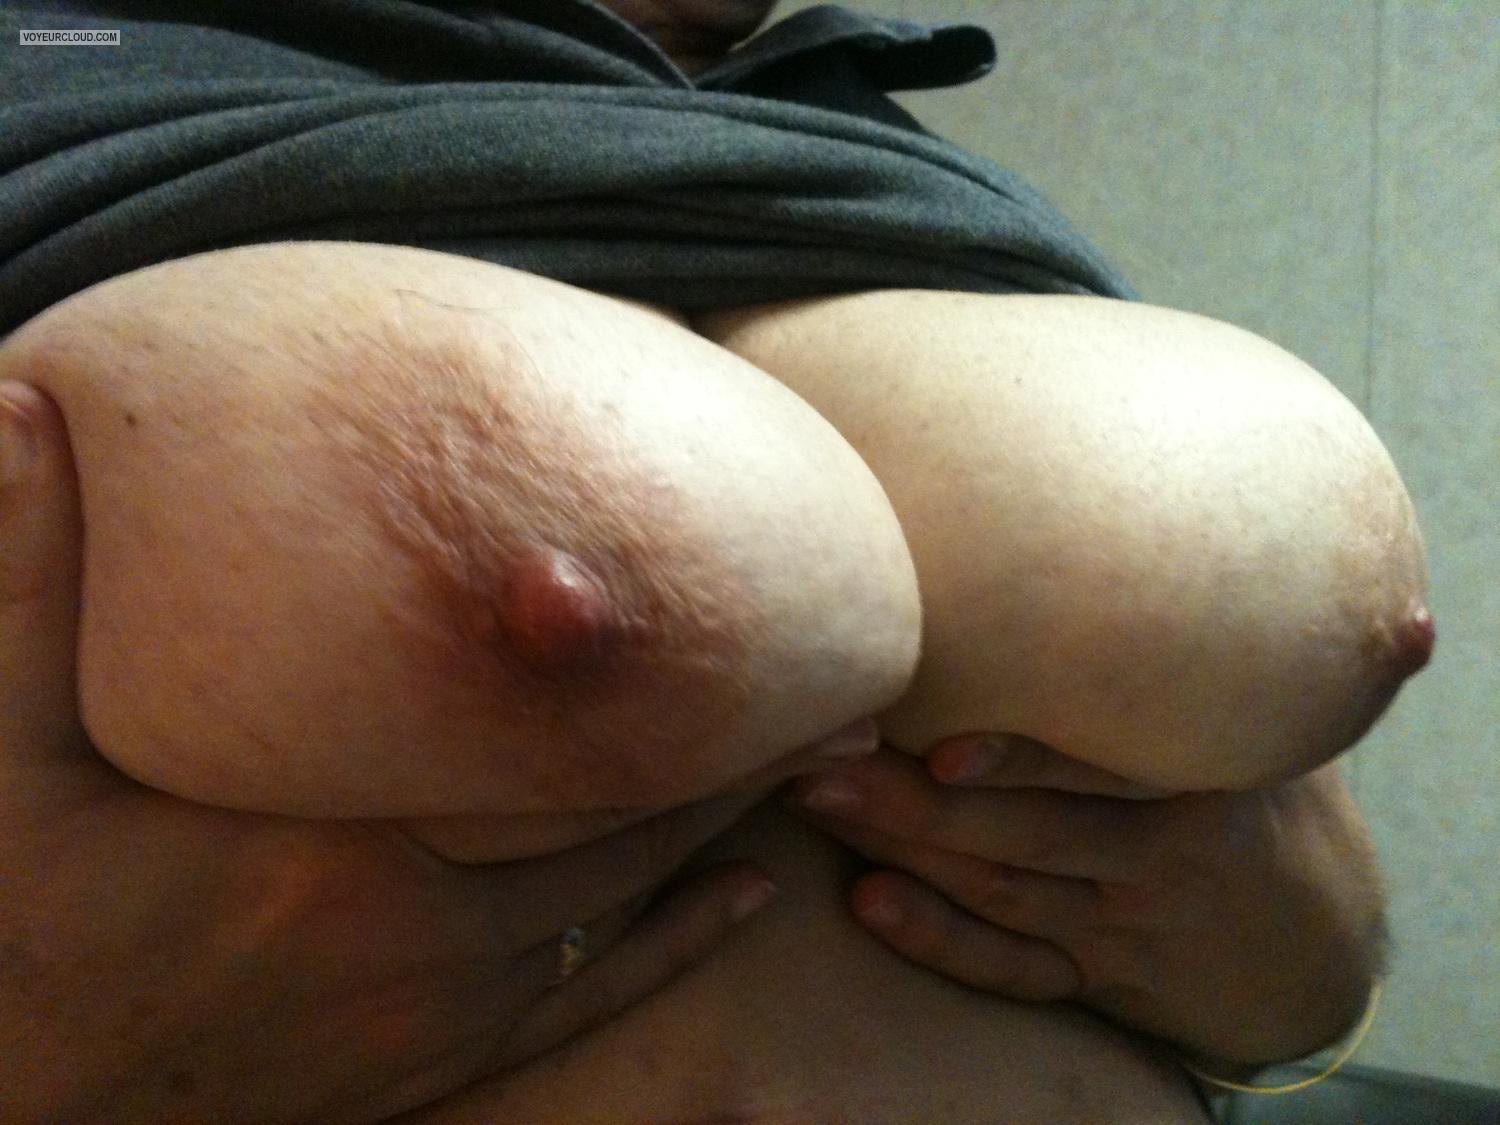 Tit Flash: Big Tits By IPhone - FWB Big Cuban Tits from United States